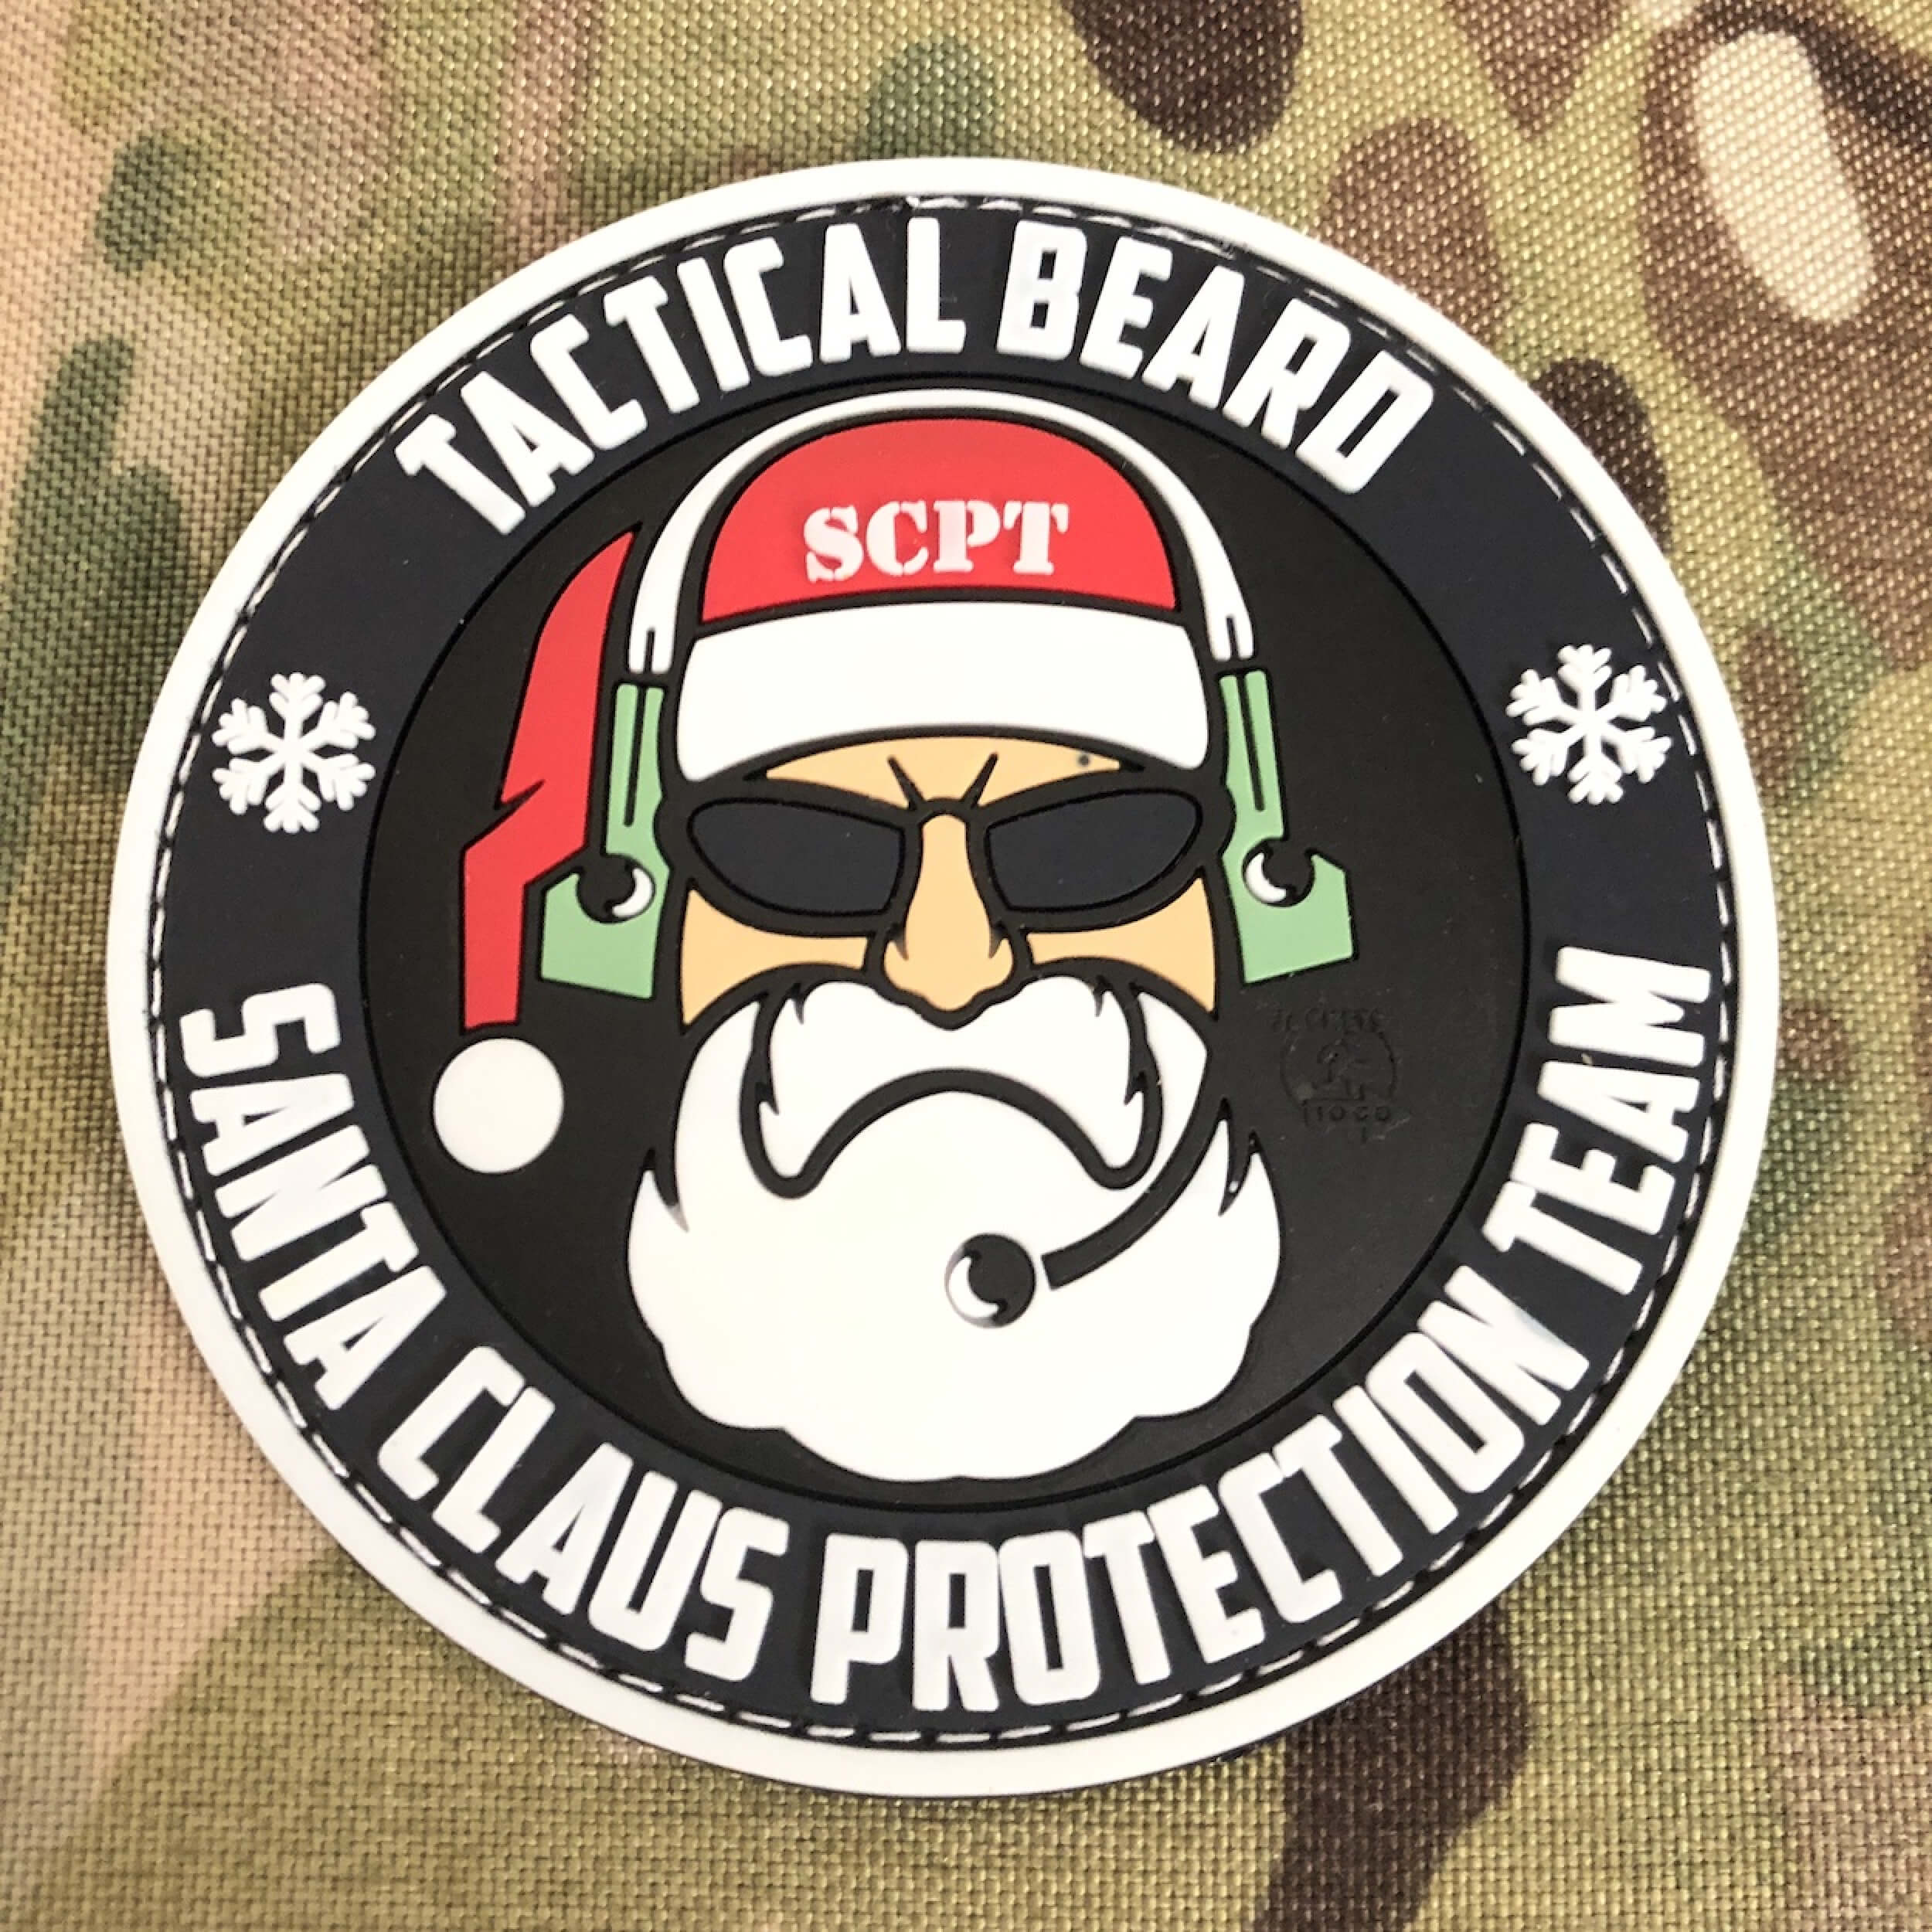 TACTICAL BEARD SANTA CLAUS PROTECTION TEAM Patch (gb)